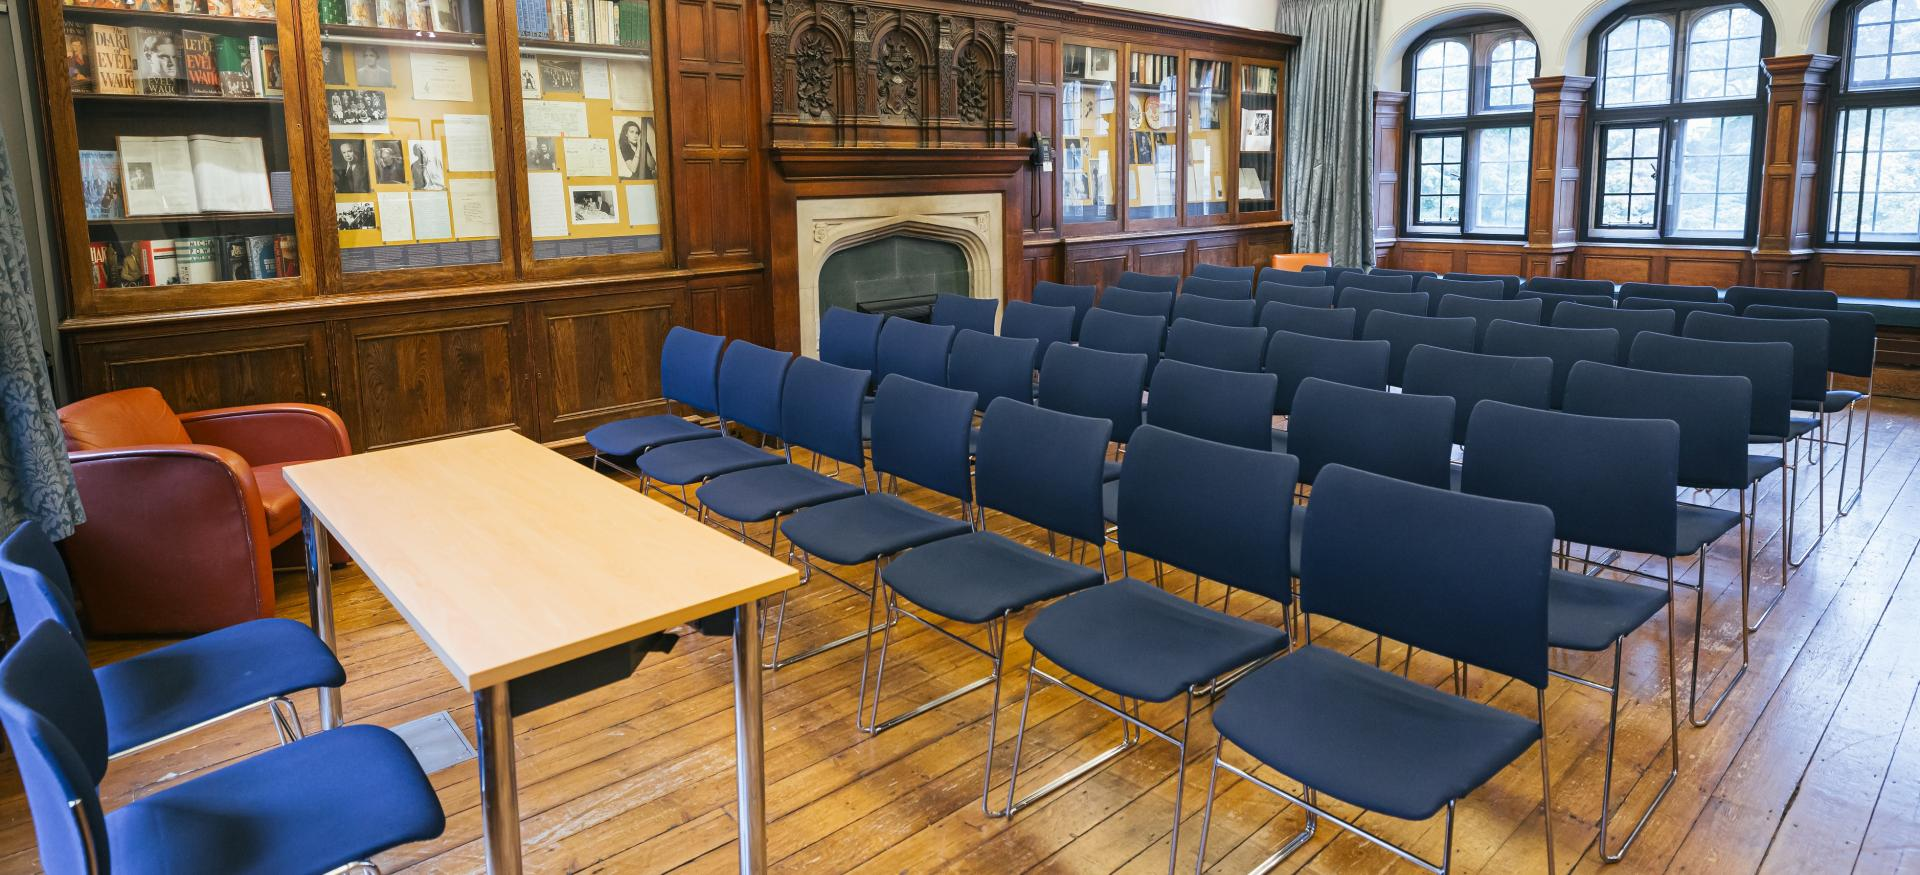 The Trinity College Sutro Room set up in lecture theatre style with chairs.